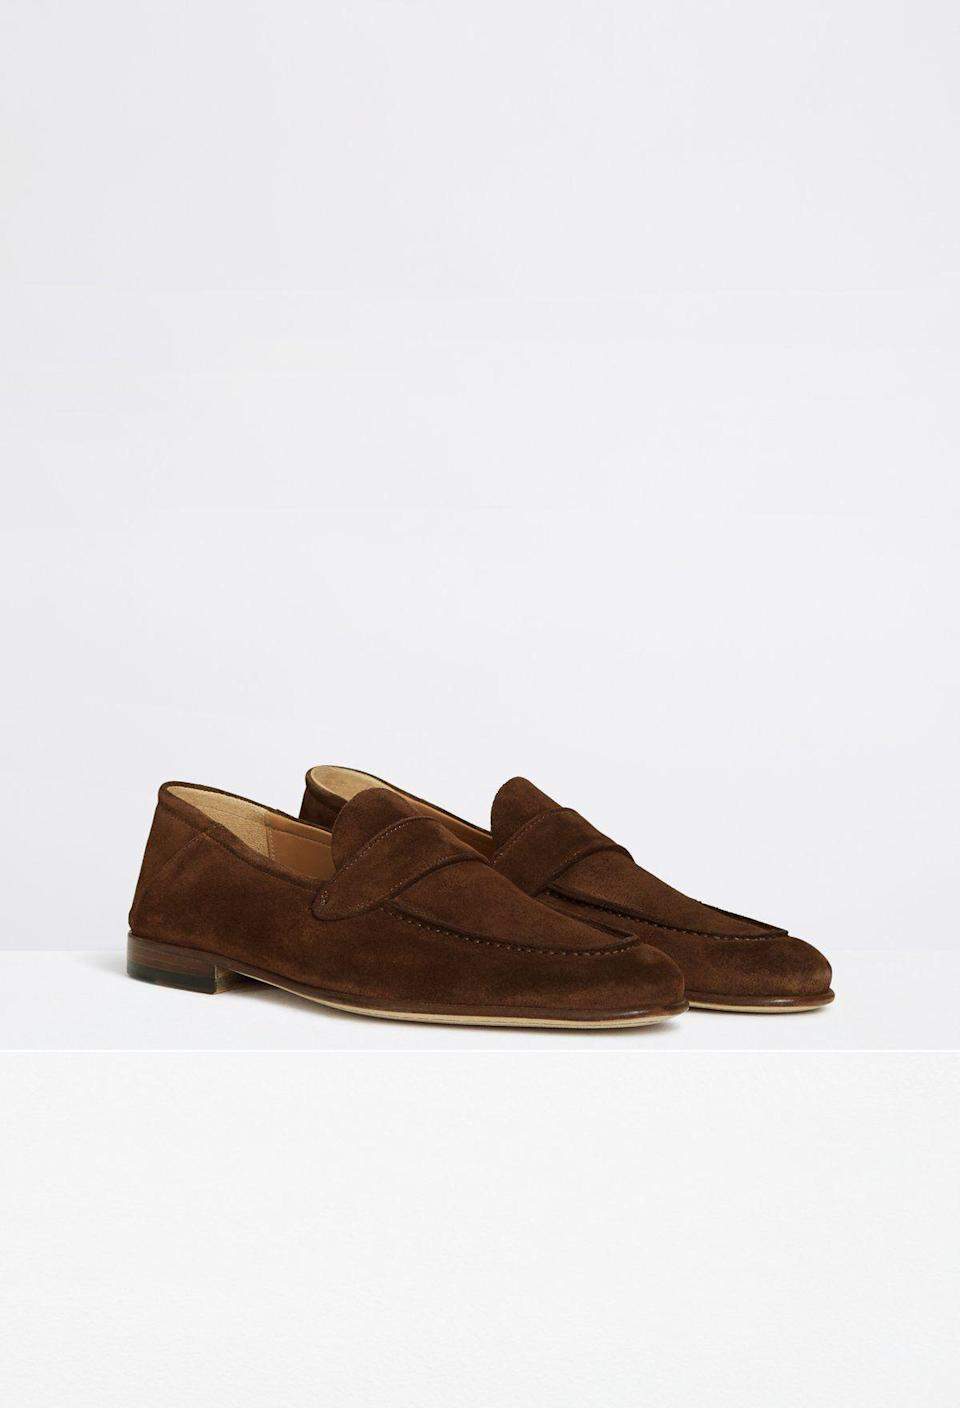 "<p><strong>Armando Cabral </strong></p><p>armando-cabral.com</p><p><strong>$190.00</strong></p><p><a href=""https://shop.armando-cabral.com/collections/loafers/products/morton-dark-brown"" rel=""nofollow noopener"" target=""_blank"" data-ylk=""slk:Shop Now"" class=""link rapid-noclick-resp"">Shop Now</a></p><p>Drawing upon his travels and modeling career, Armando Cabral produces sophisticated footwear for the modern man. </p>"